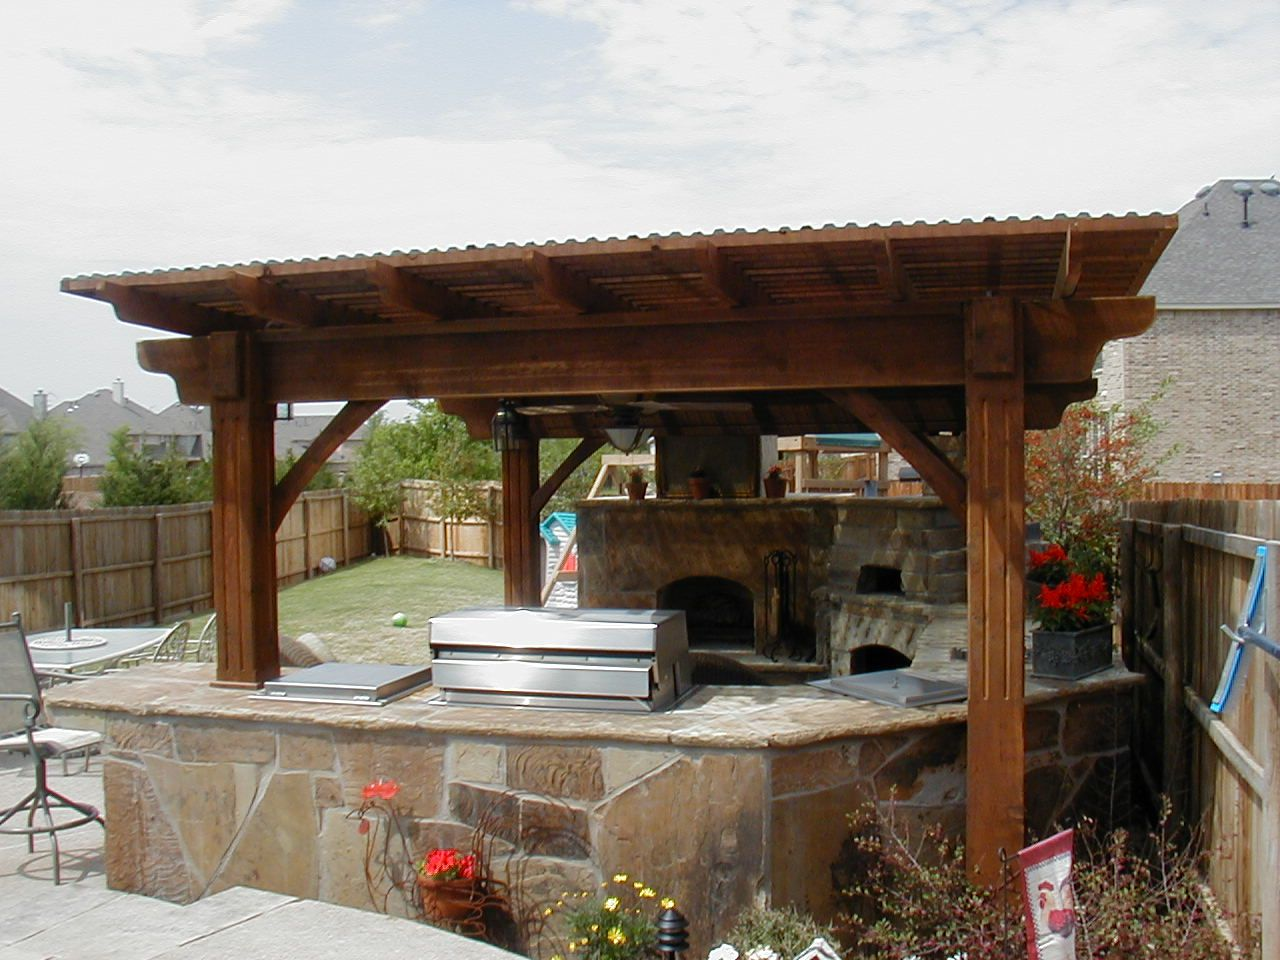 outdoor kitchen roof covers welcome to wayray the ultimate outdoor experience photo gallery on outdoor kitchen gazebo ideas id=39433